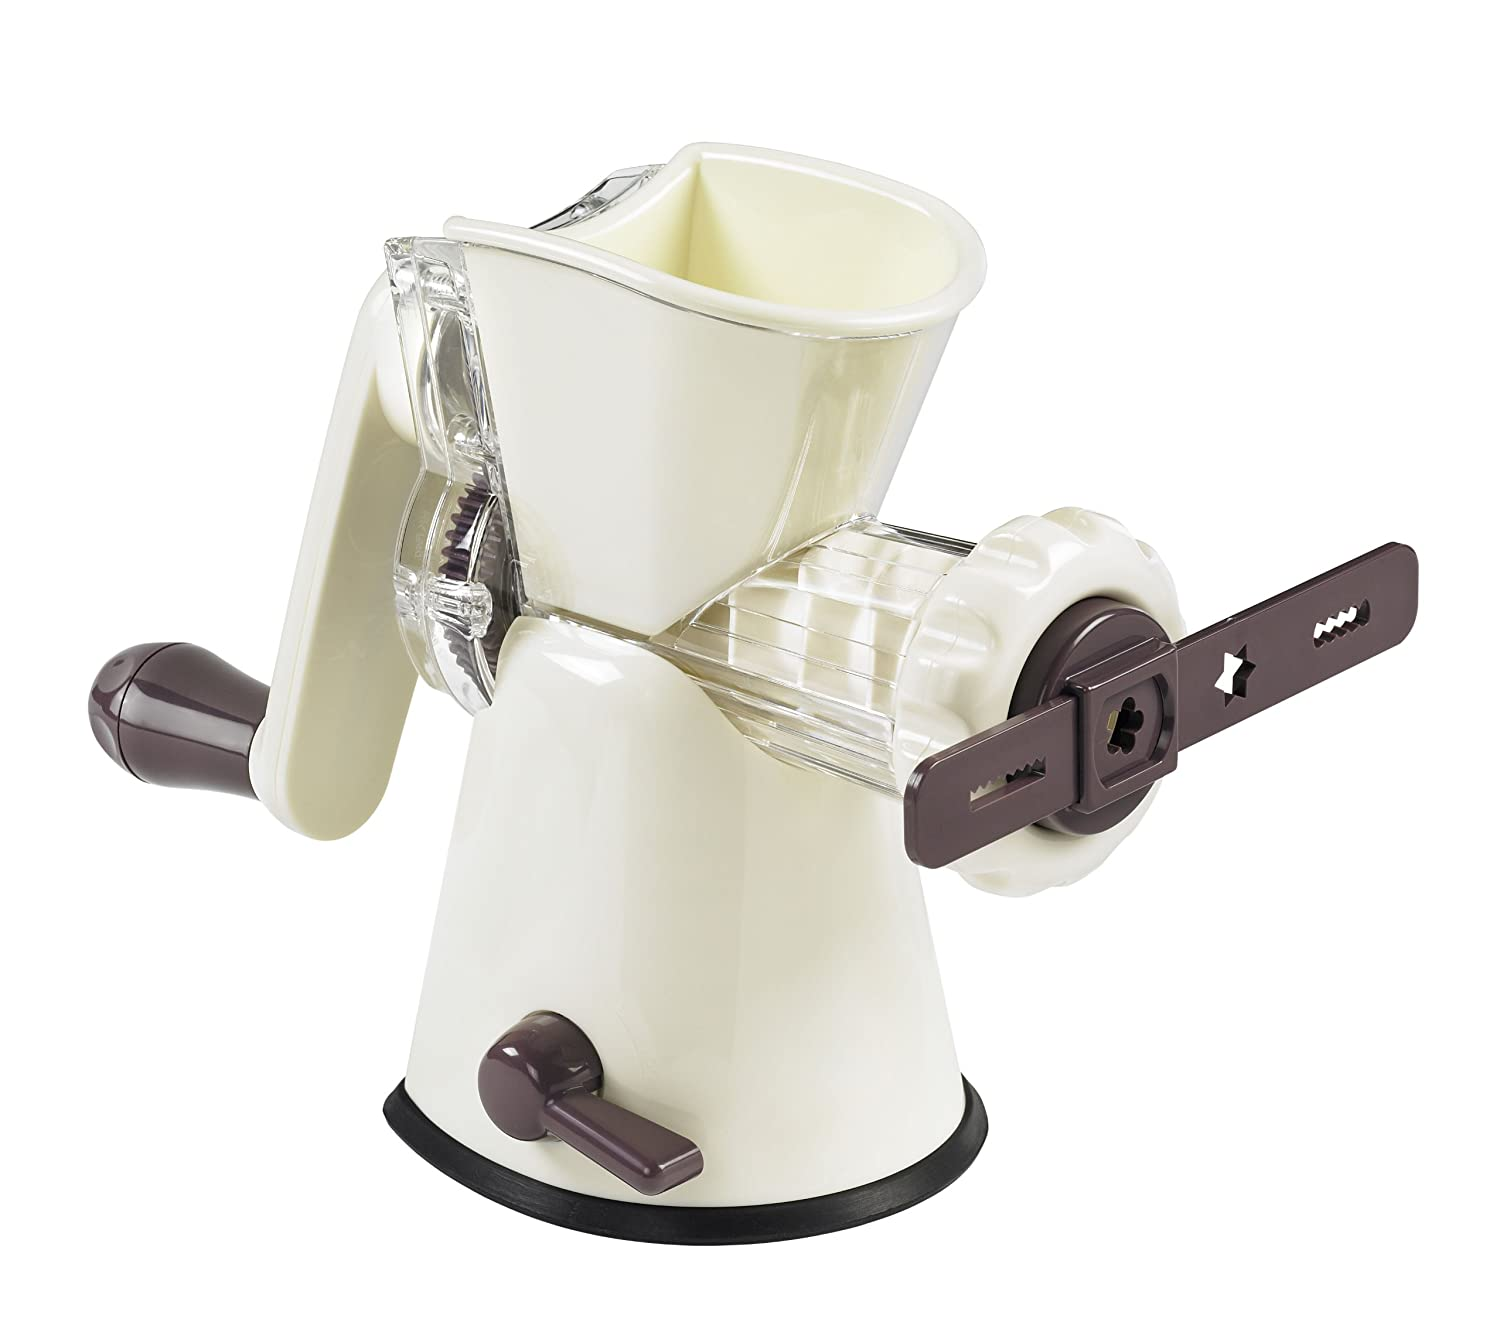 Lurch Germany Base&Soul Meat Mincer iron (Aubergine/Cream White)